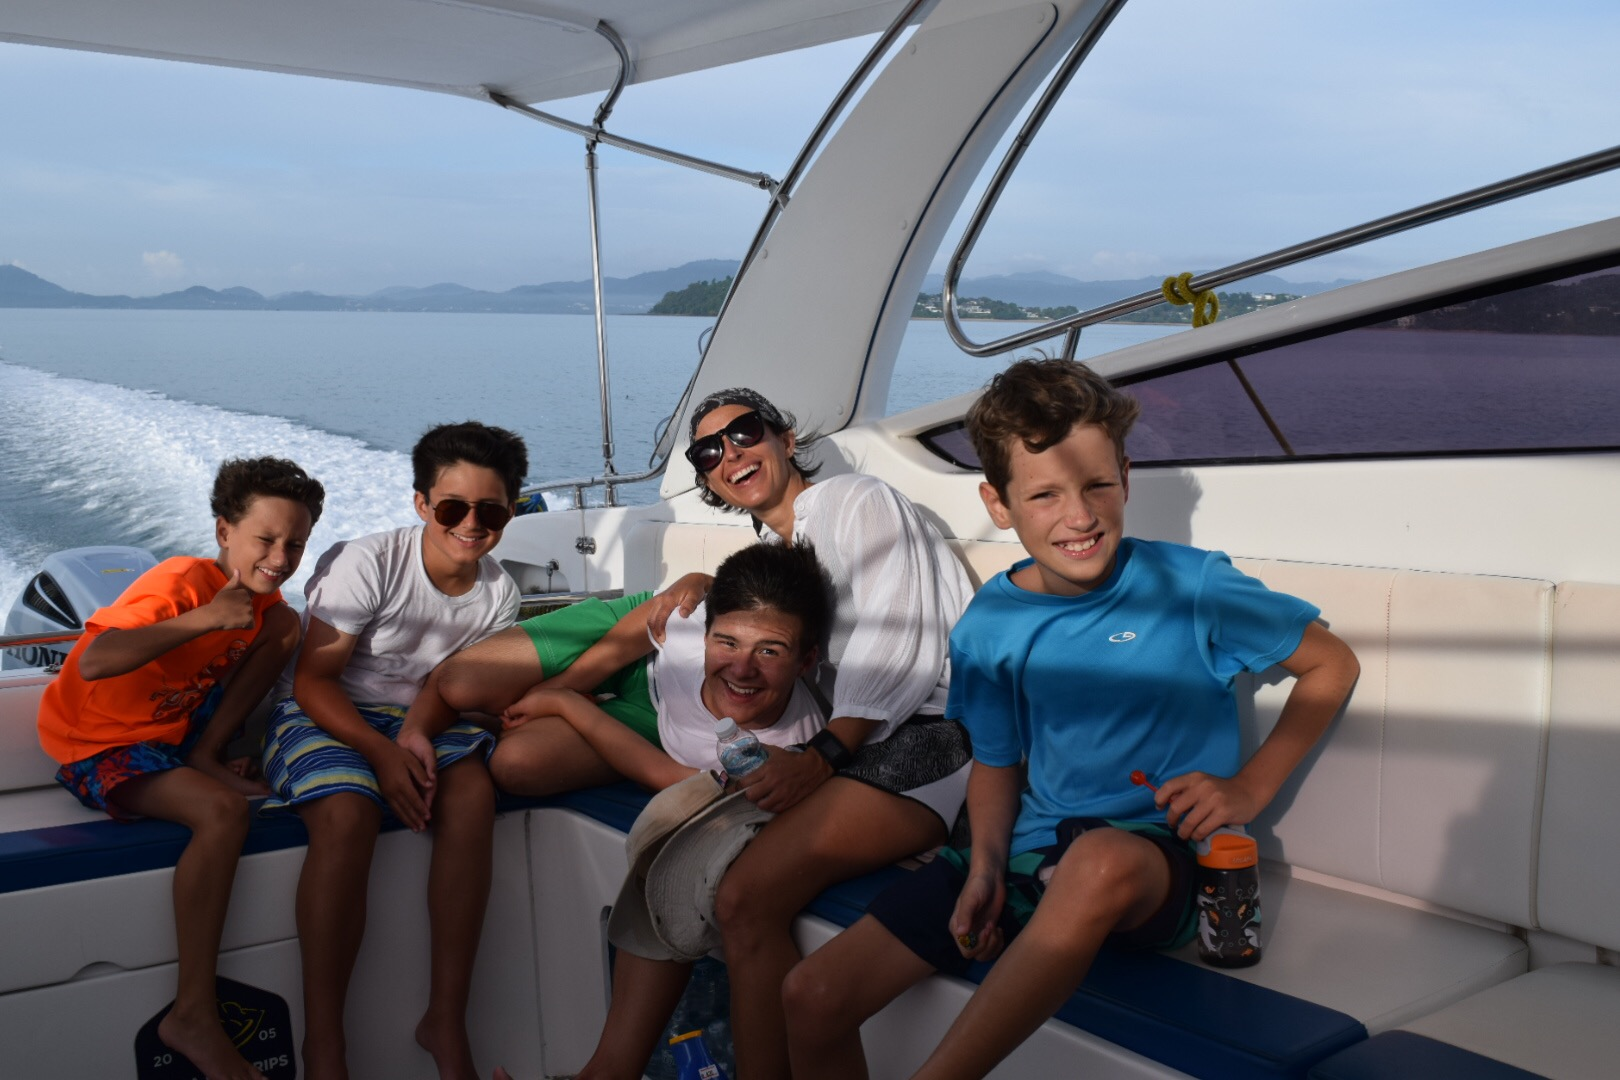 Baskins and Boys on the Boat.jpg